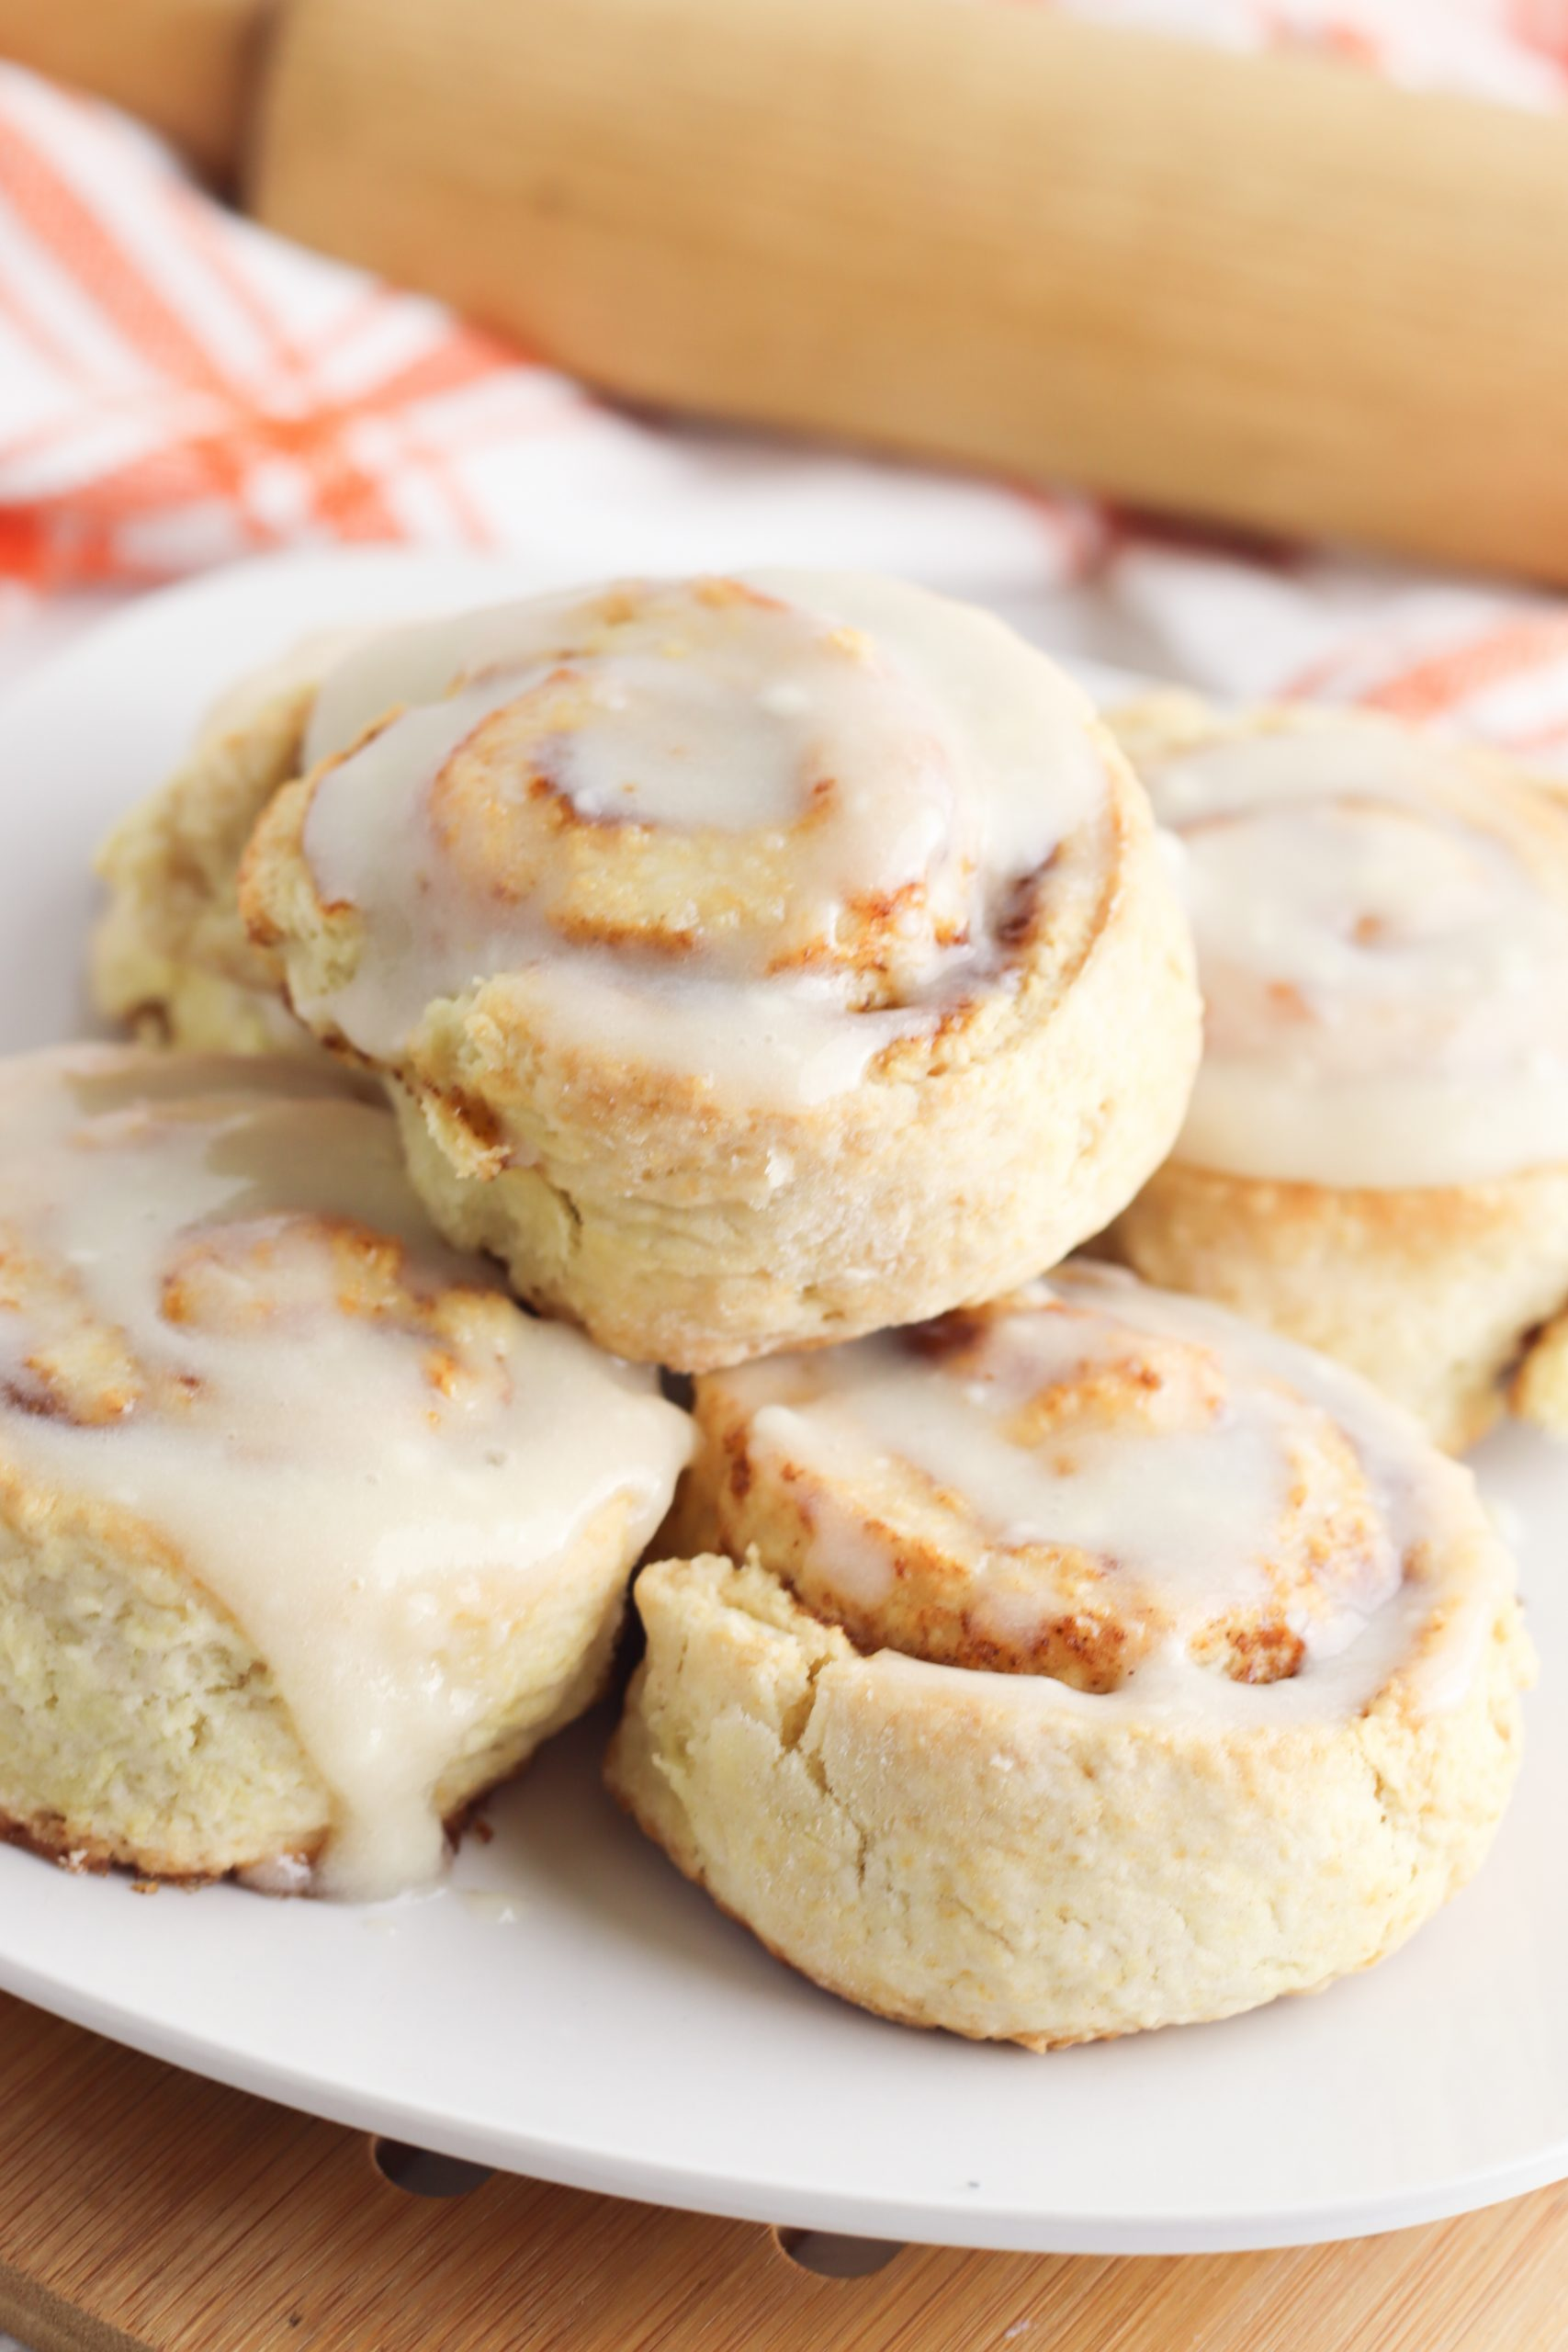 Homemade Cinnamon Rolls made with Pumpkin is a perfect Fall recipe.